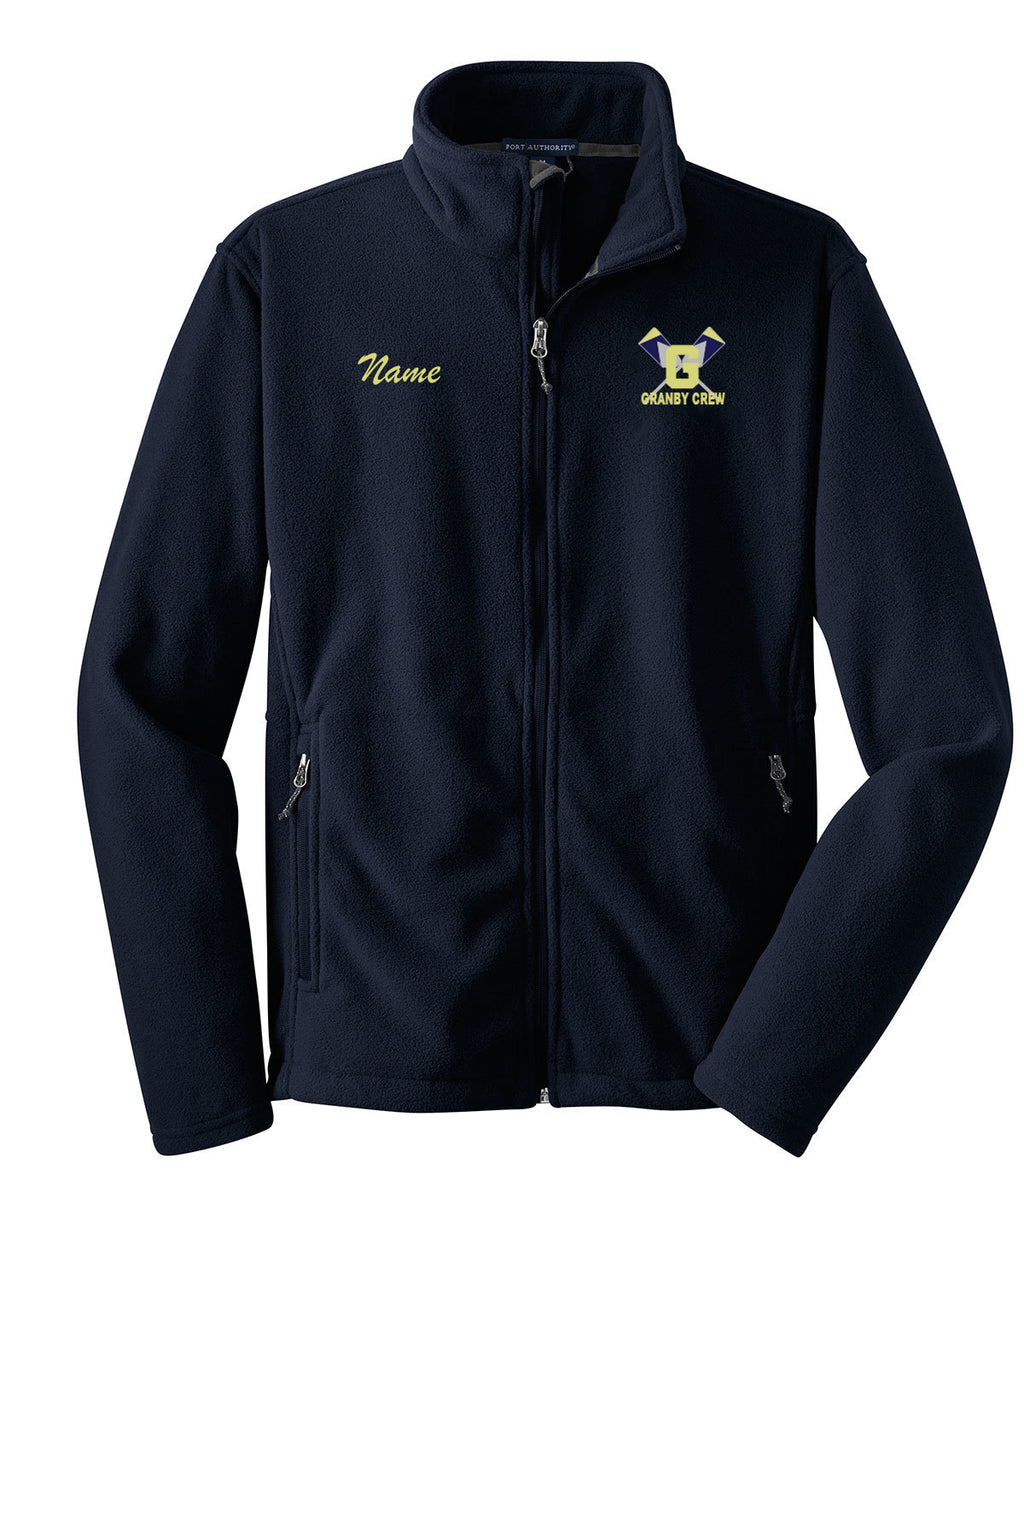 Full Zip Granby Crew Fleece Pullover